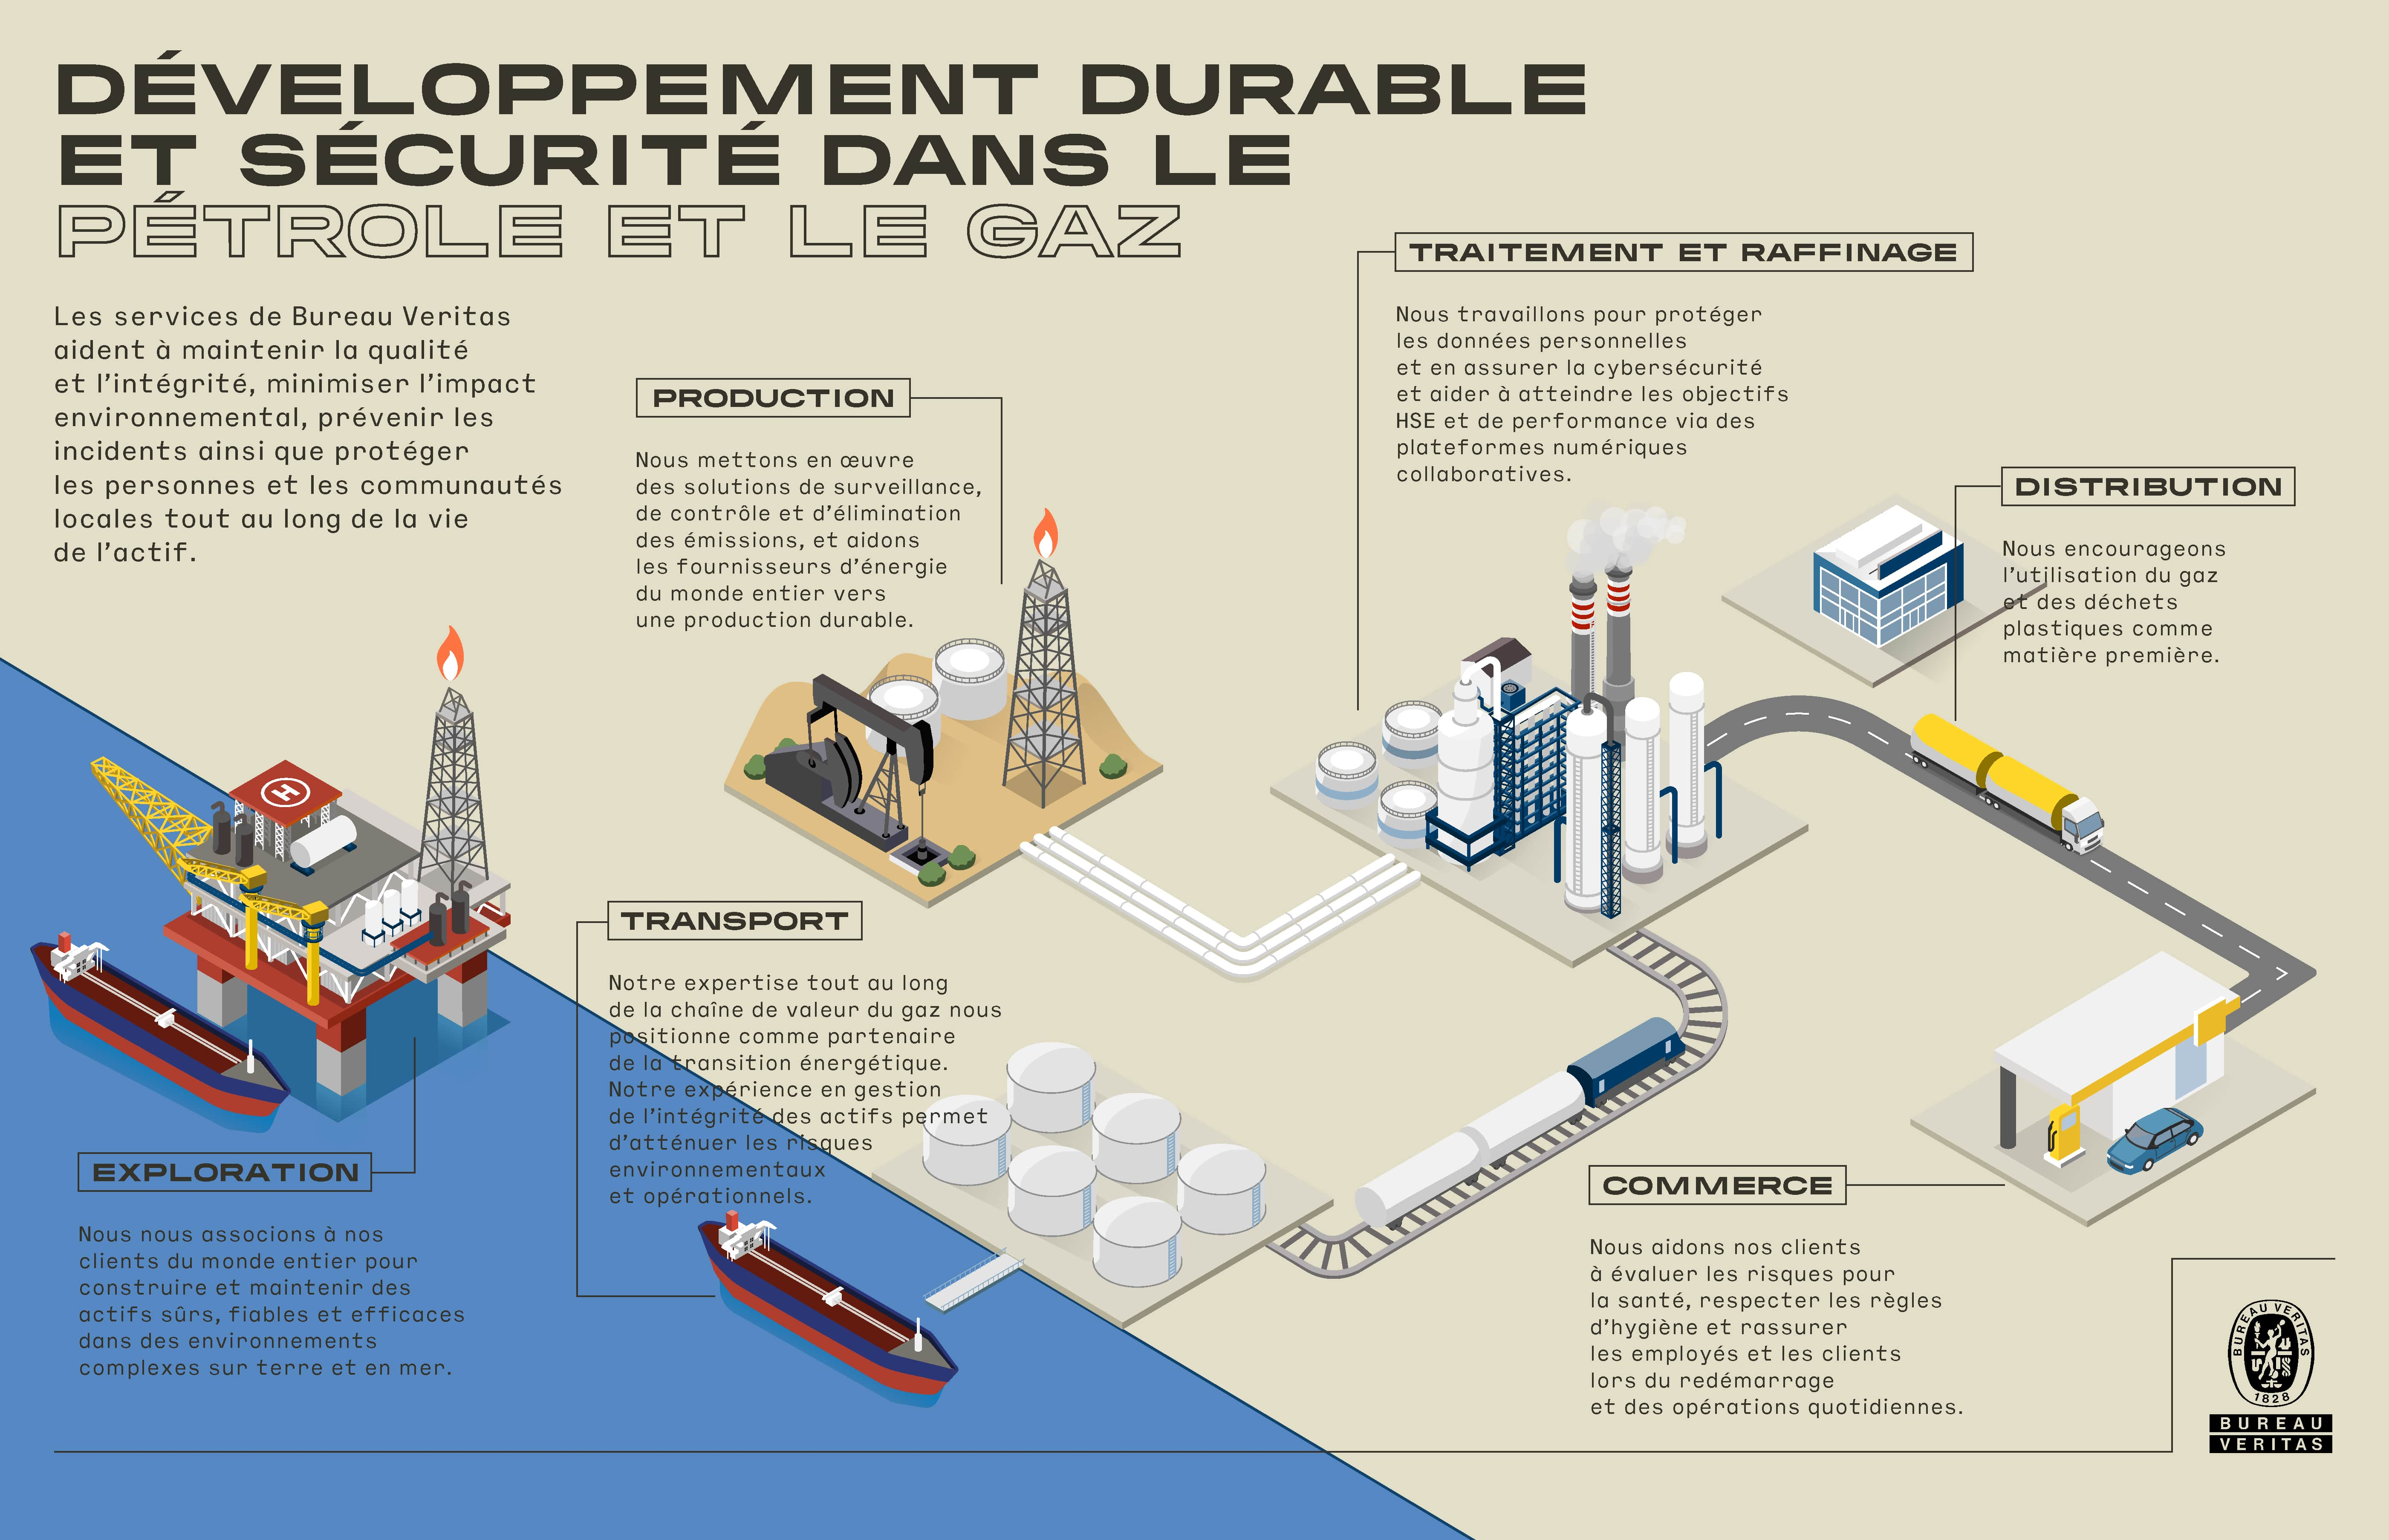 BV-OilGas-01_DevtDurable-et-securite